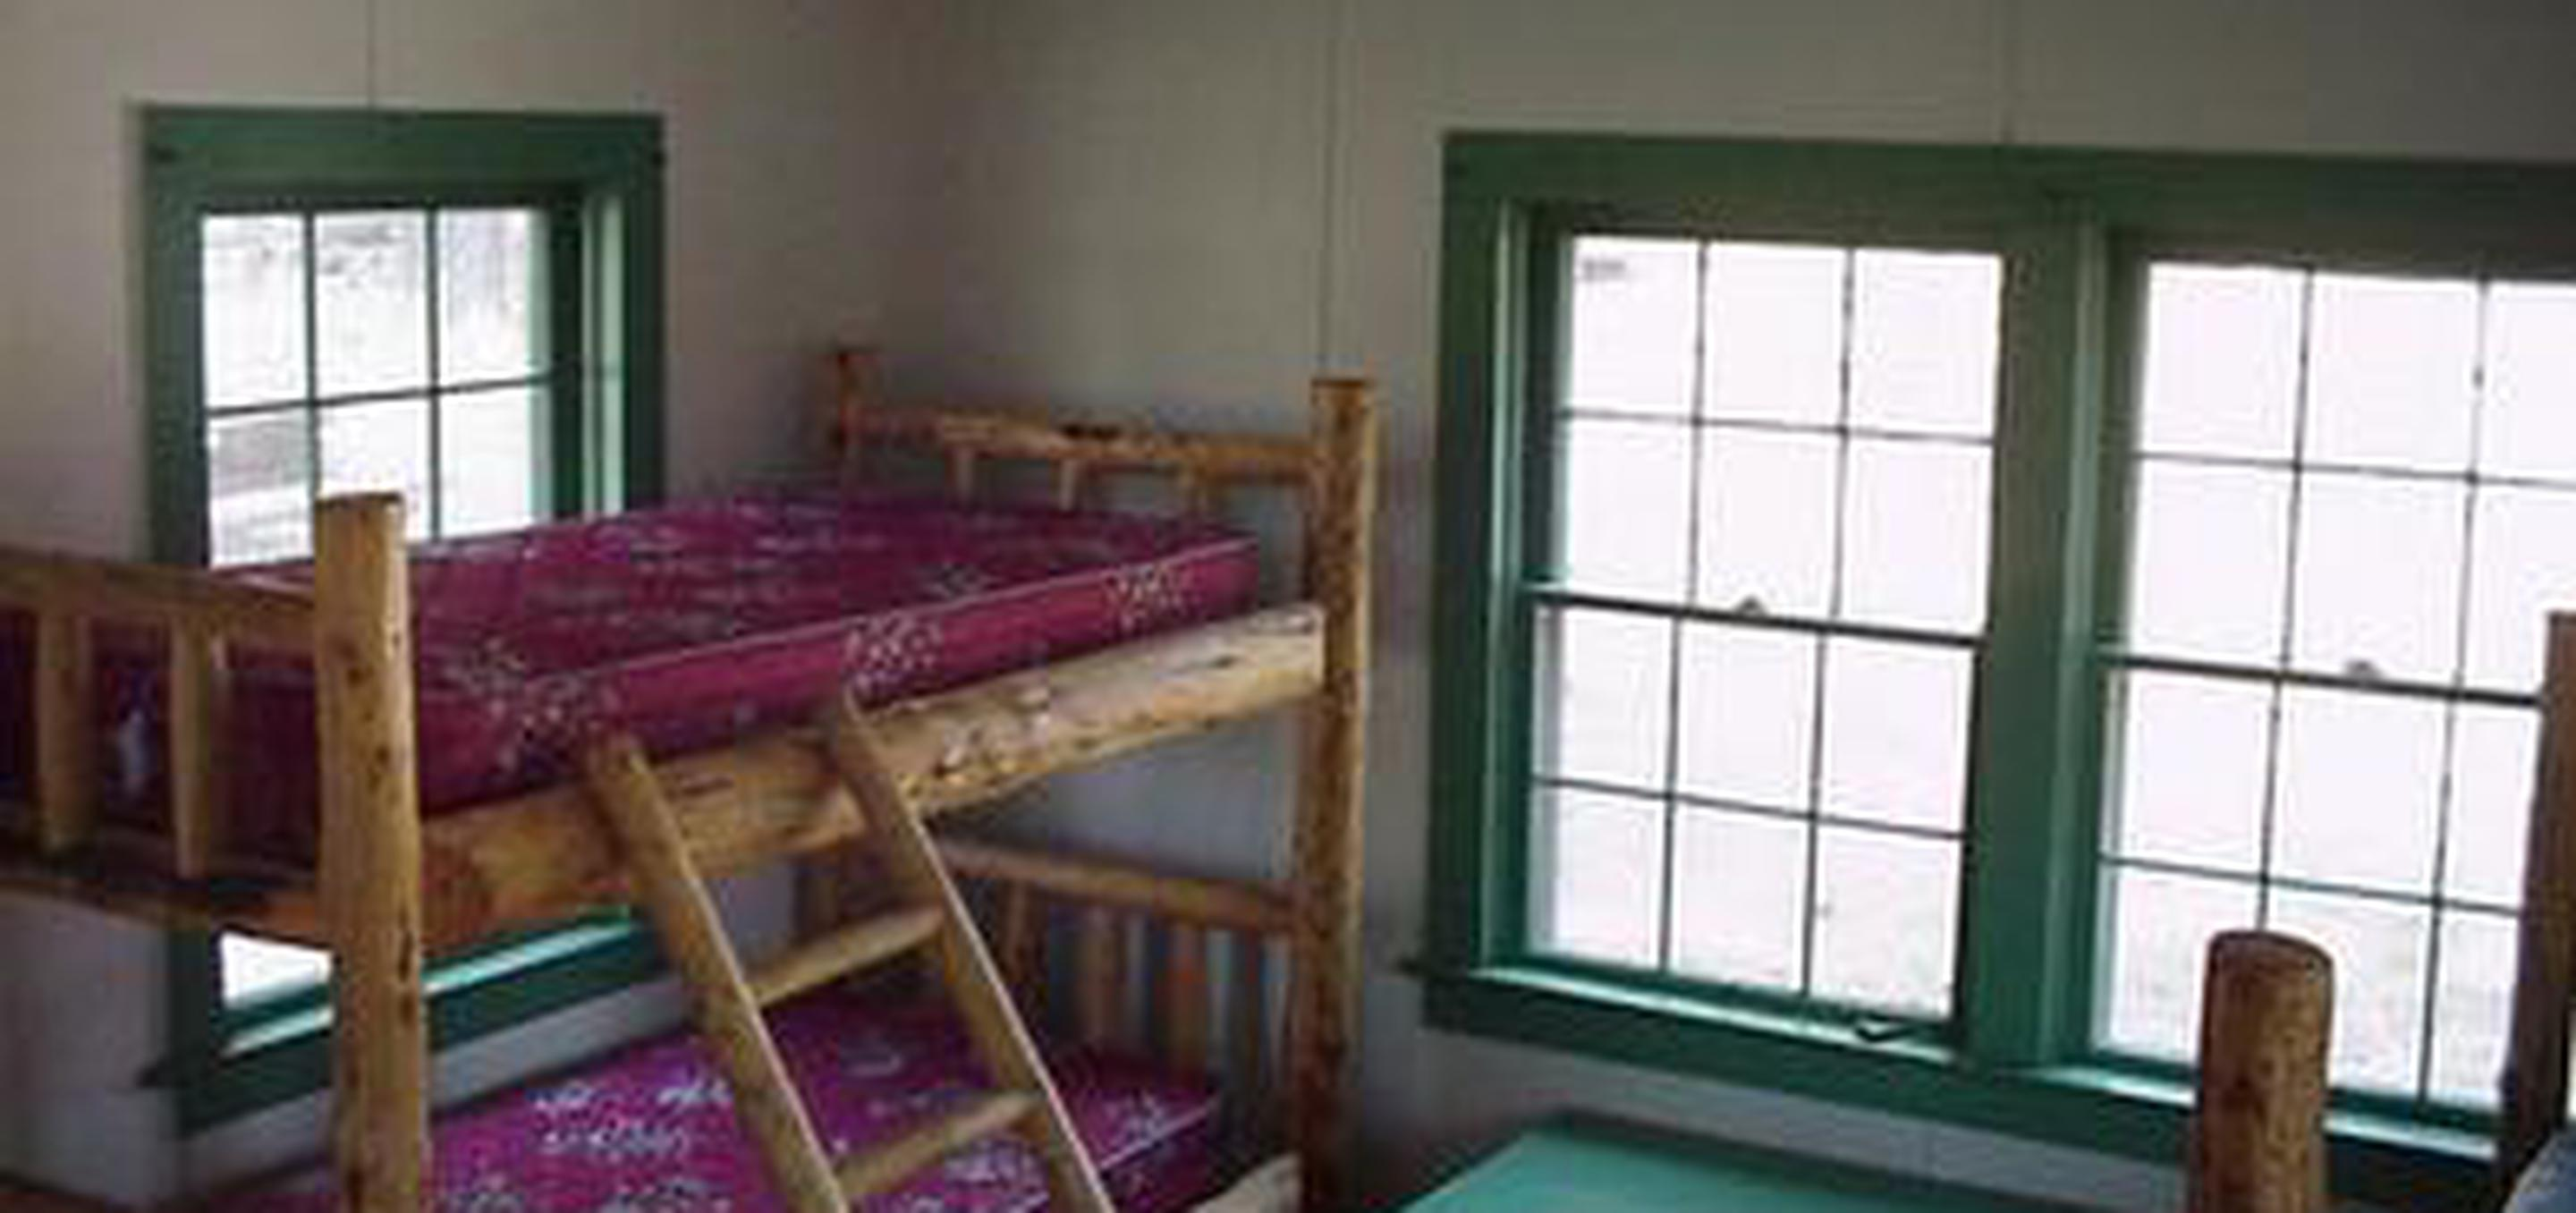 CURRIER GUARD STATIONLog bunk beds with pink mattresses in a wood paneled room painted white with three 12-pane windows with green frames.